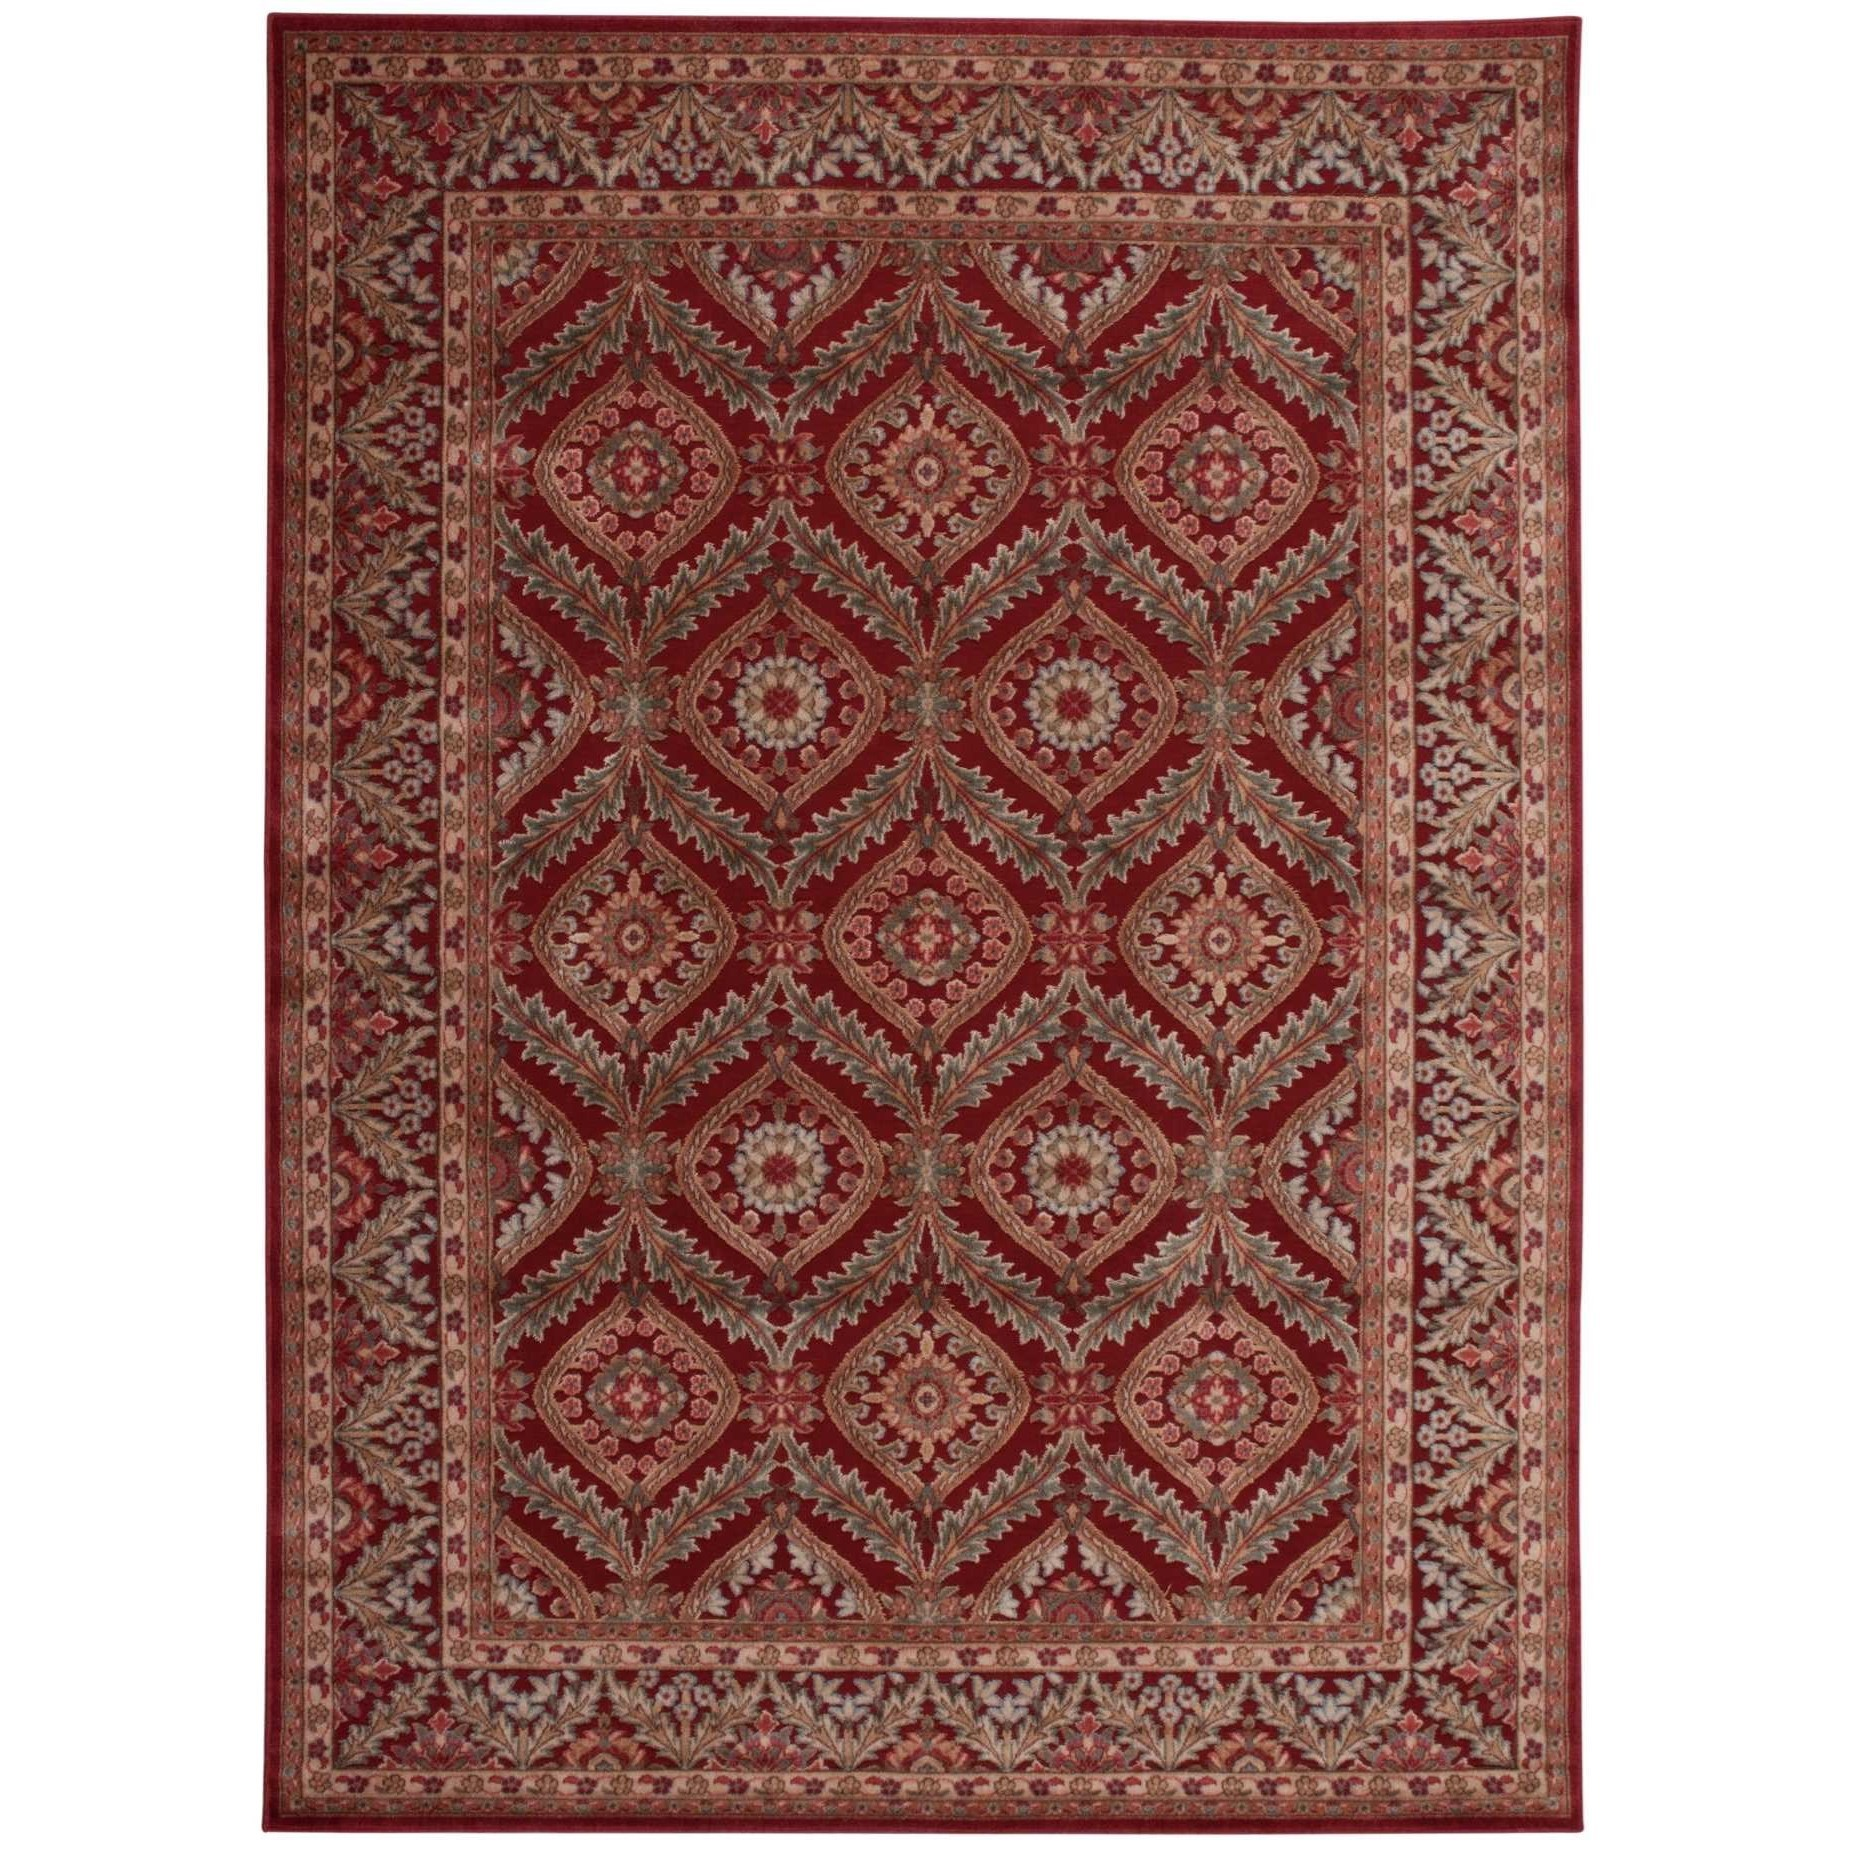 Nourison graphic illusions 7399quot x 103910quot red rectangle rug for Graphic illusions